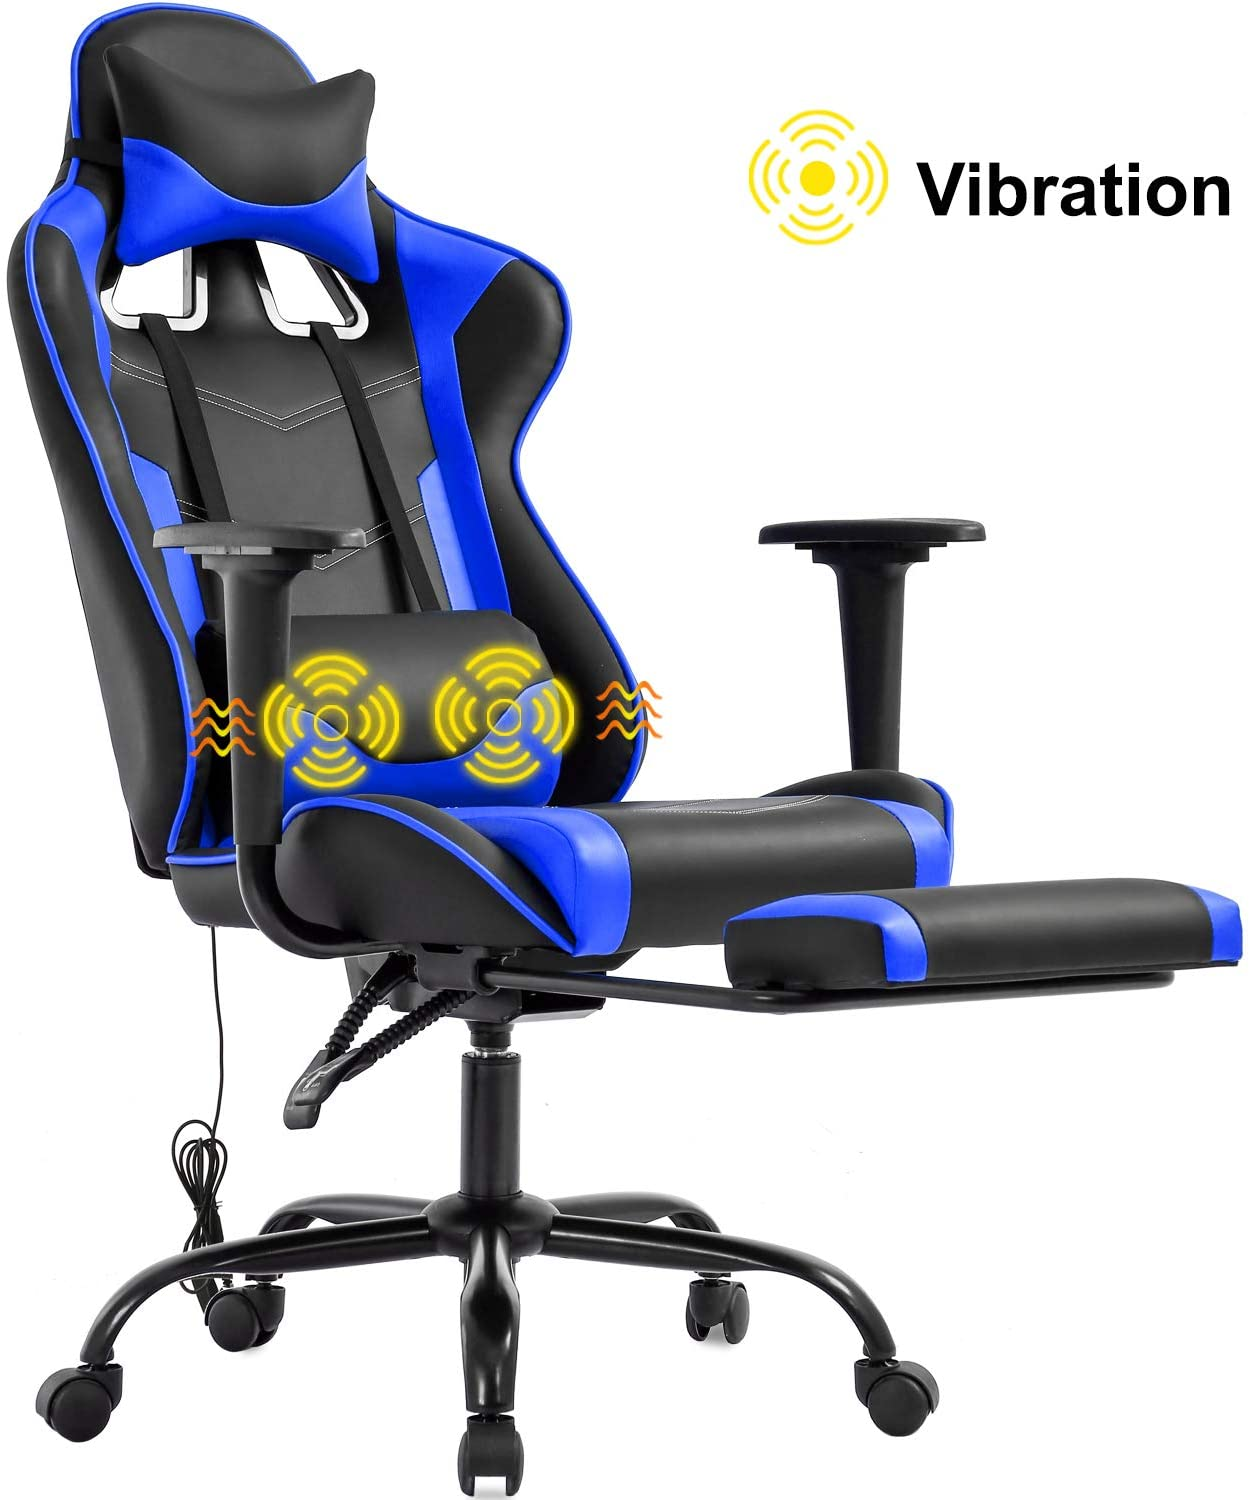 Gaming Chair Office Chair Desk Chair Massage PU Leather Recliner Racing Chair with Headrest Armrest Footrest Rolling Swivel Task PC Ergonomic Computer Chair for Back Support, Blue